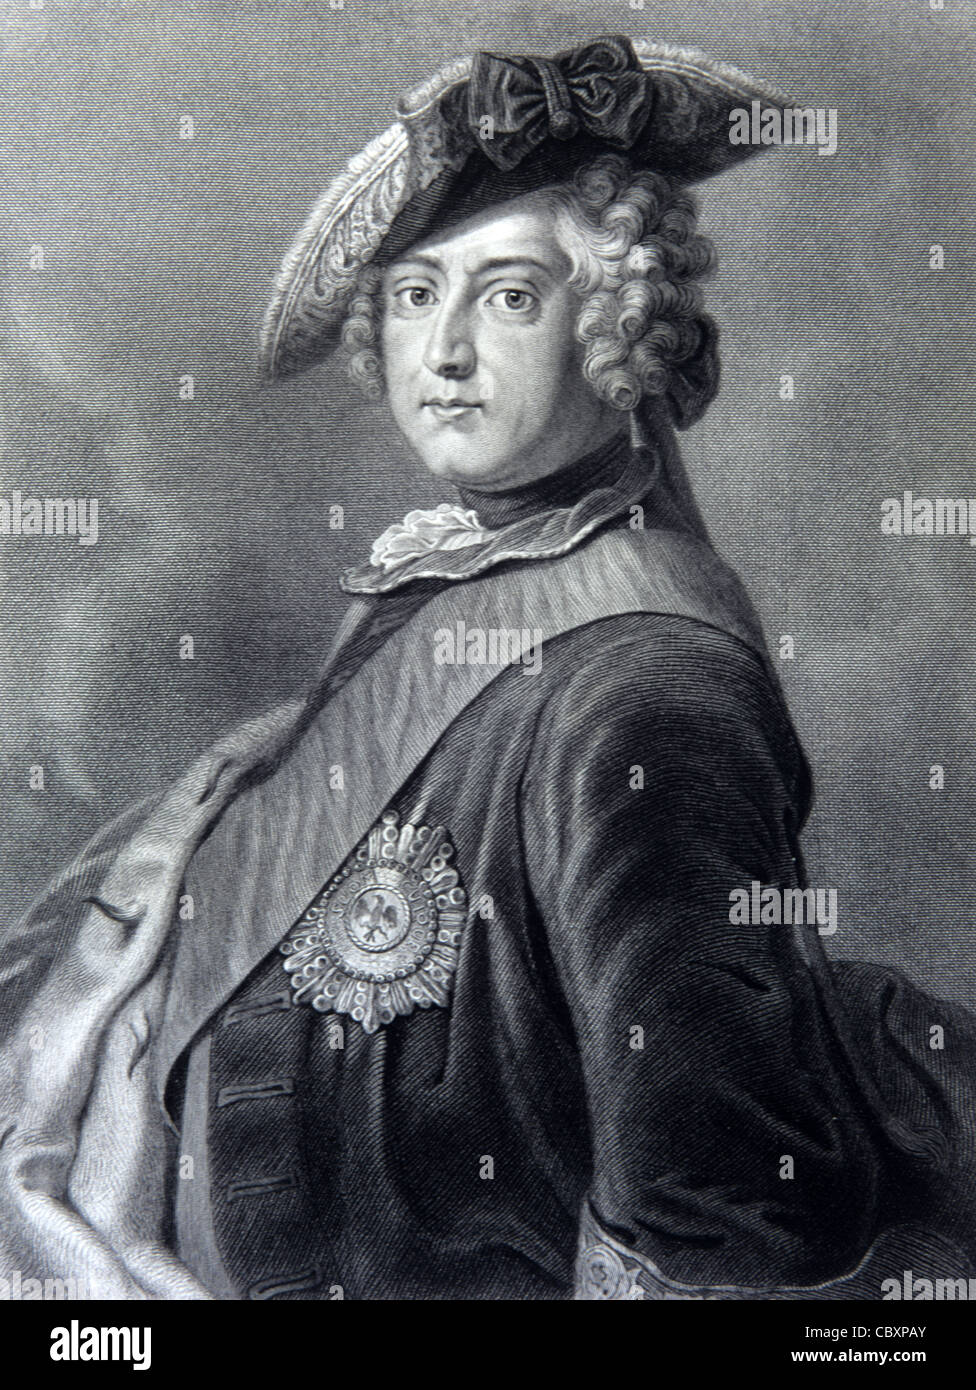 Portrait of Frederick II of Prussia, known as 'Frederick the Great' (1712-86) King of Prussia (1740-86). - Stock Image